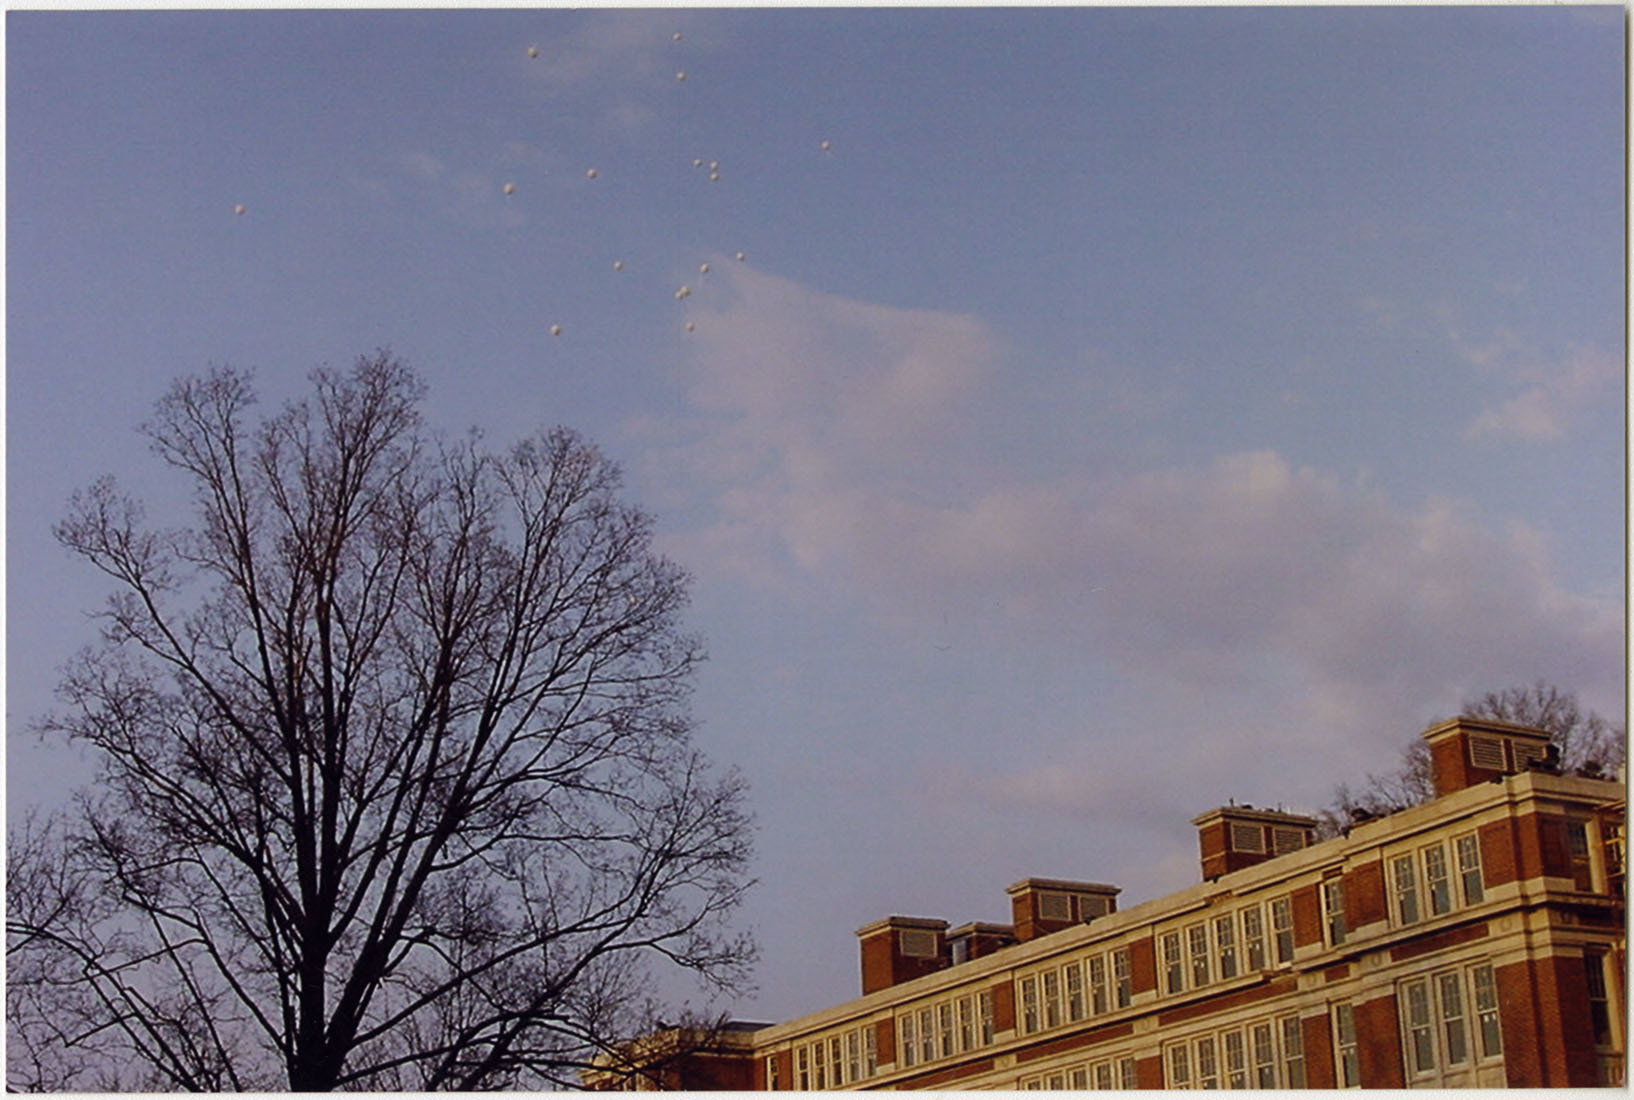 Photograph of Balloons Release with Tree View, F00048 (Ms2008-020)